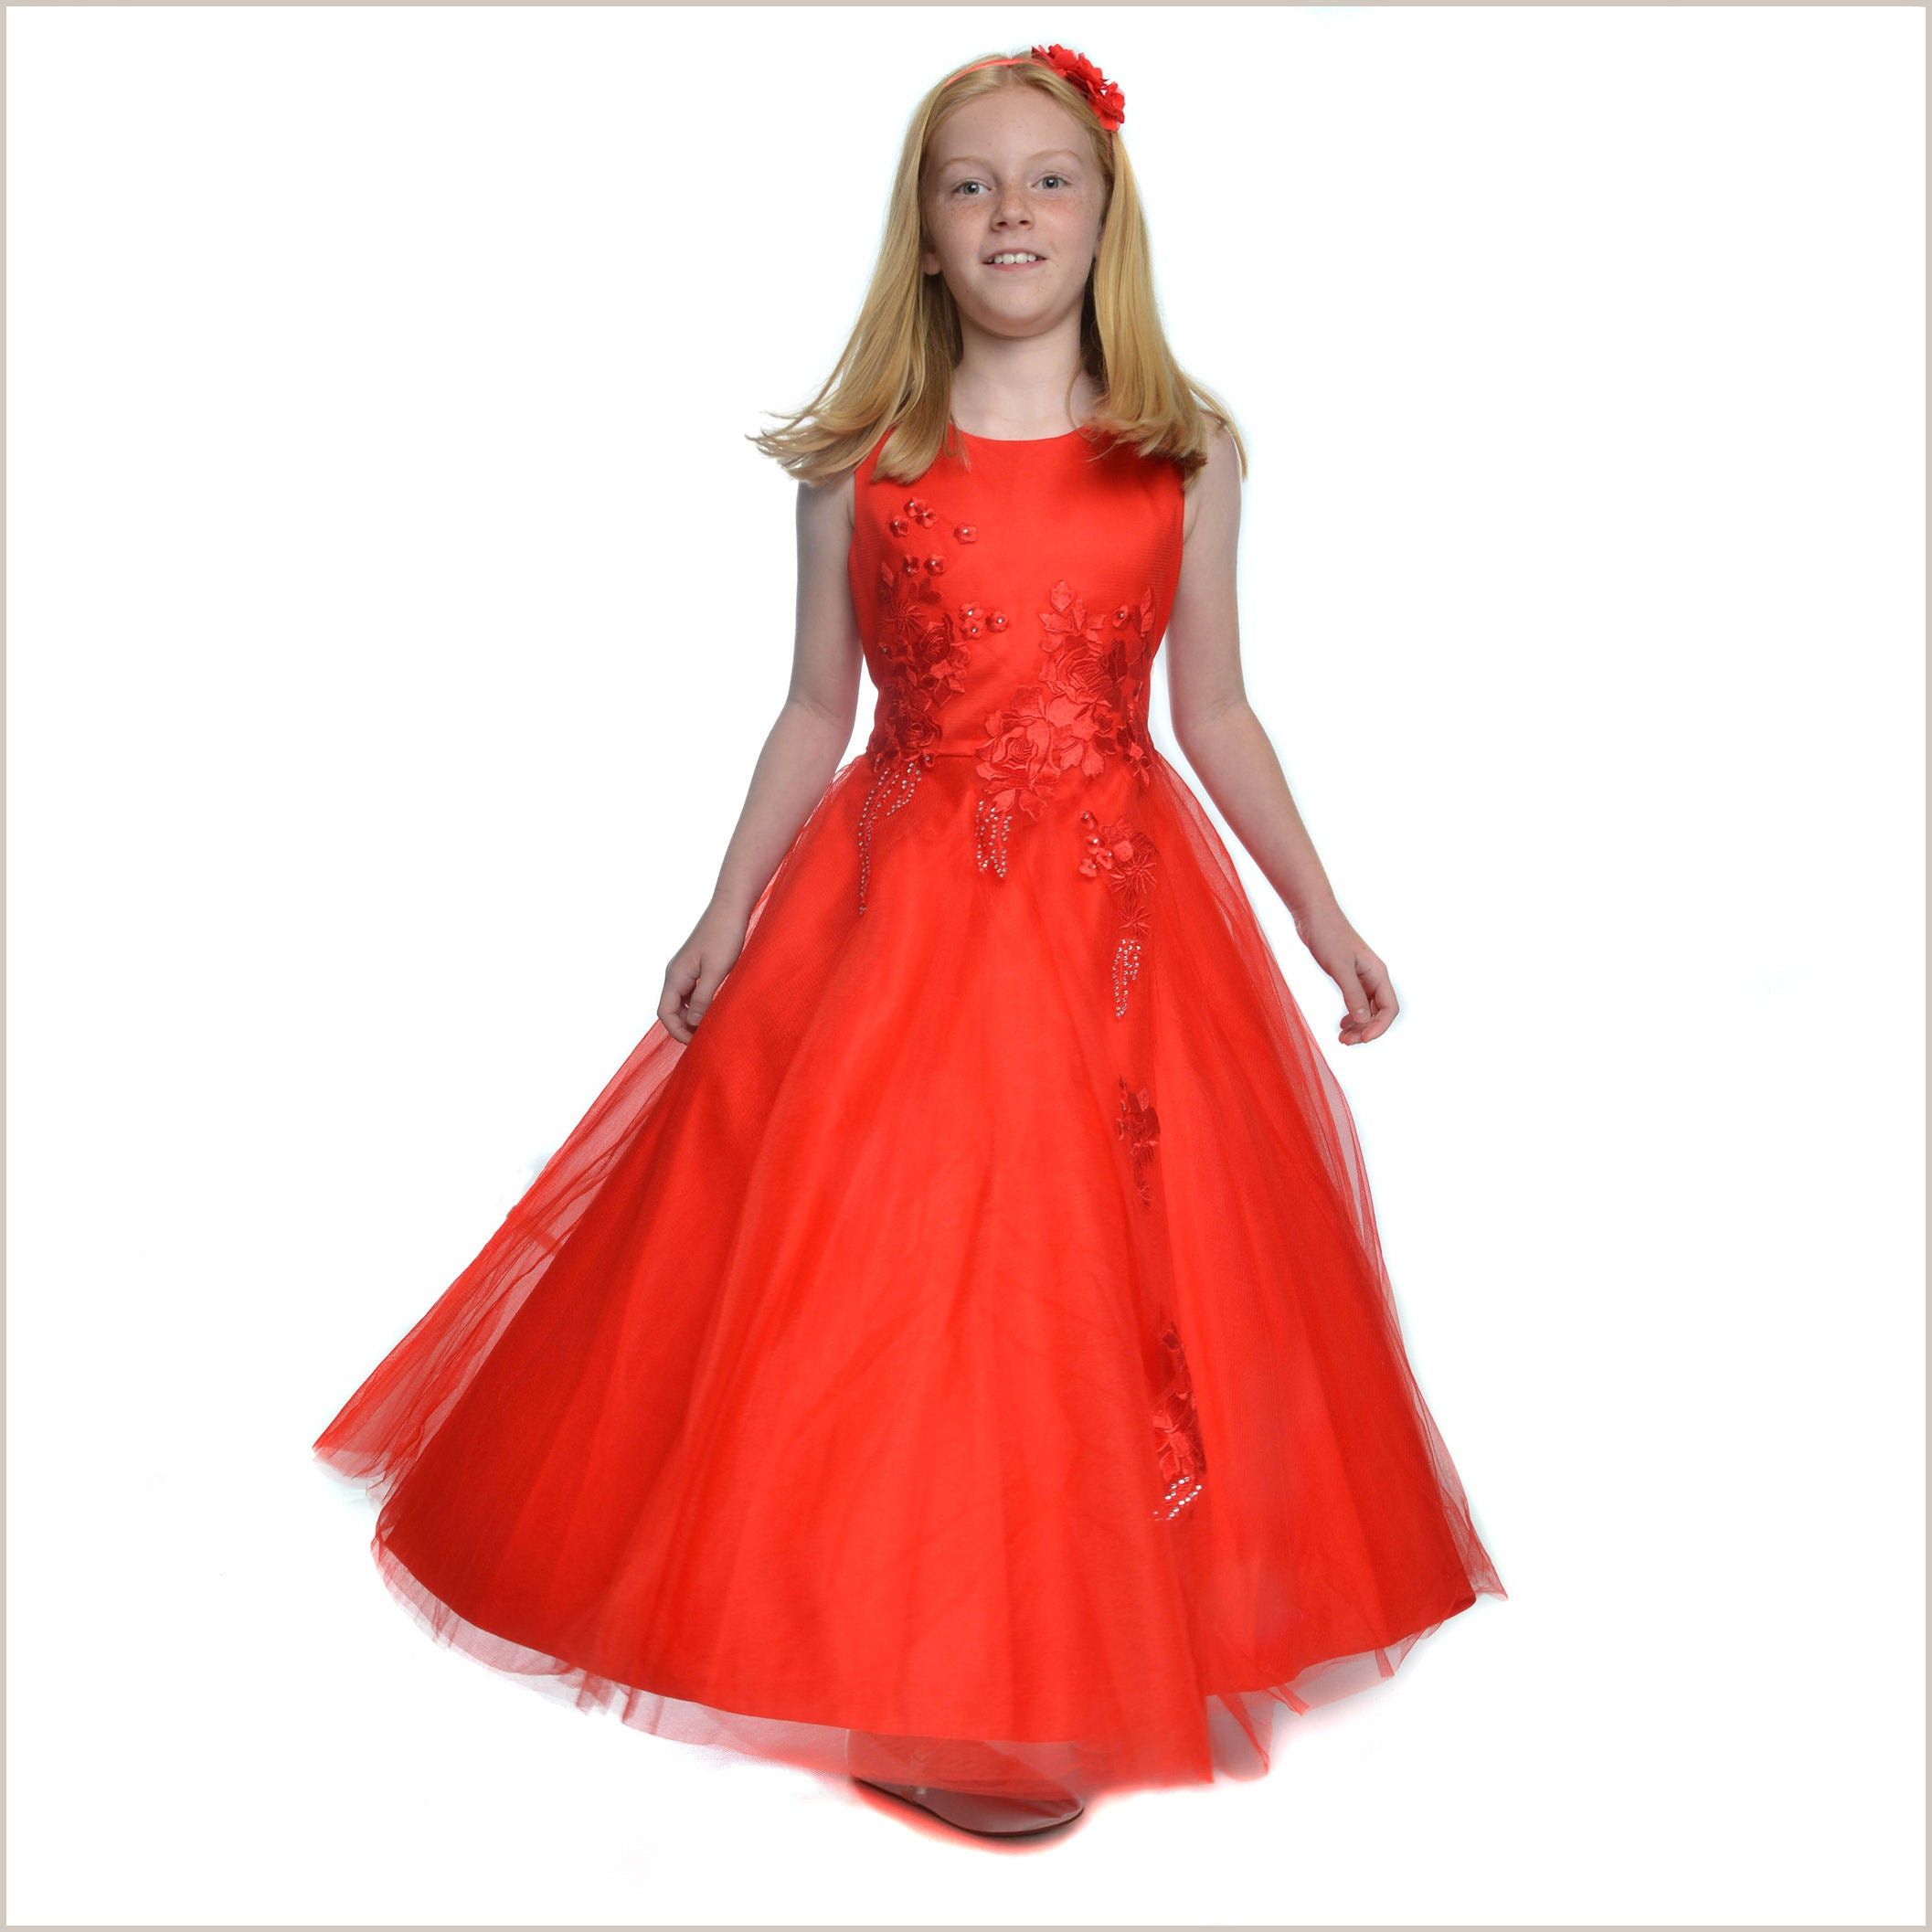 Harper red tulle bridesmaid dress great for winter weddings harper red tulle bridesmaid dress great for winter weddings ombrellifo Image collections